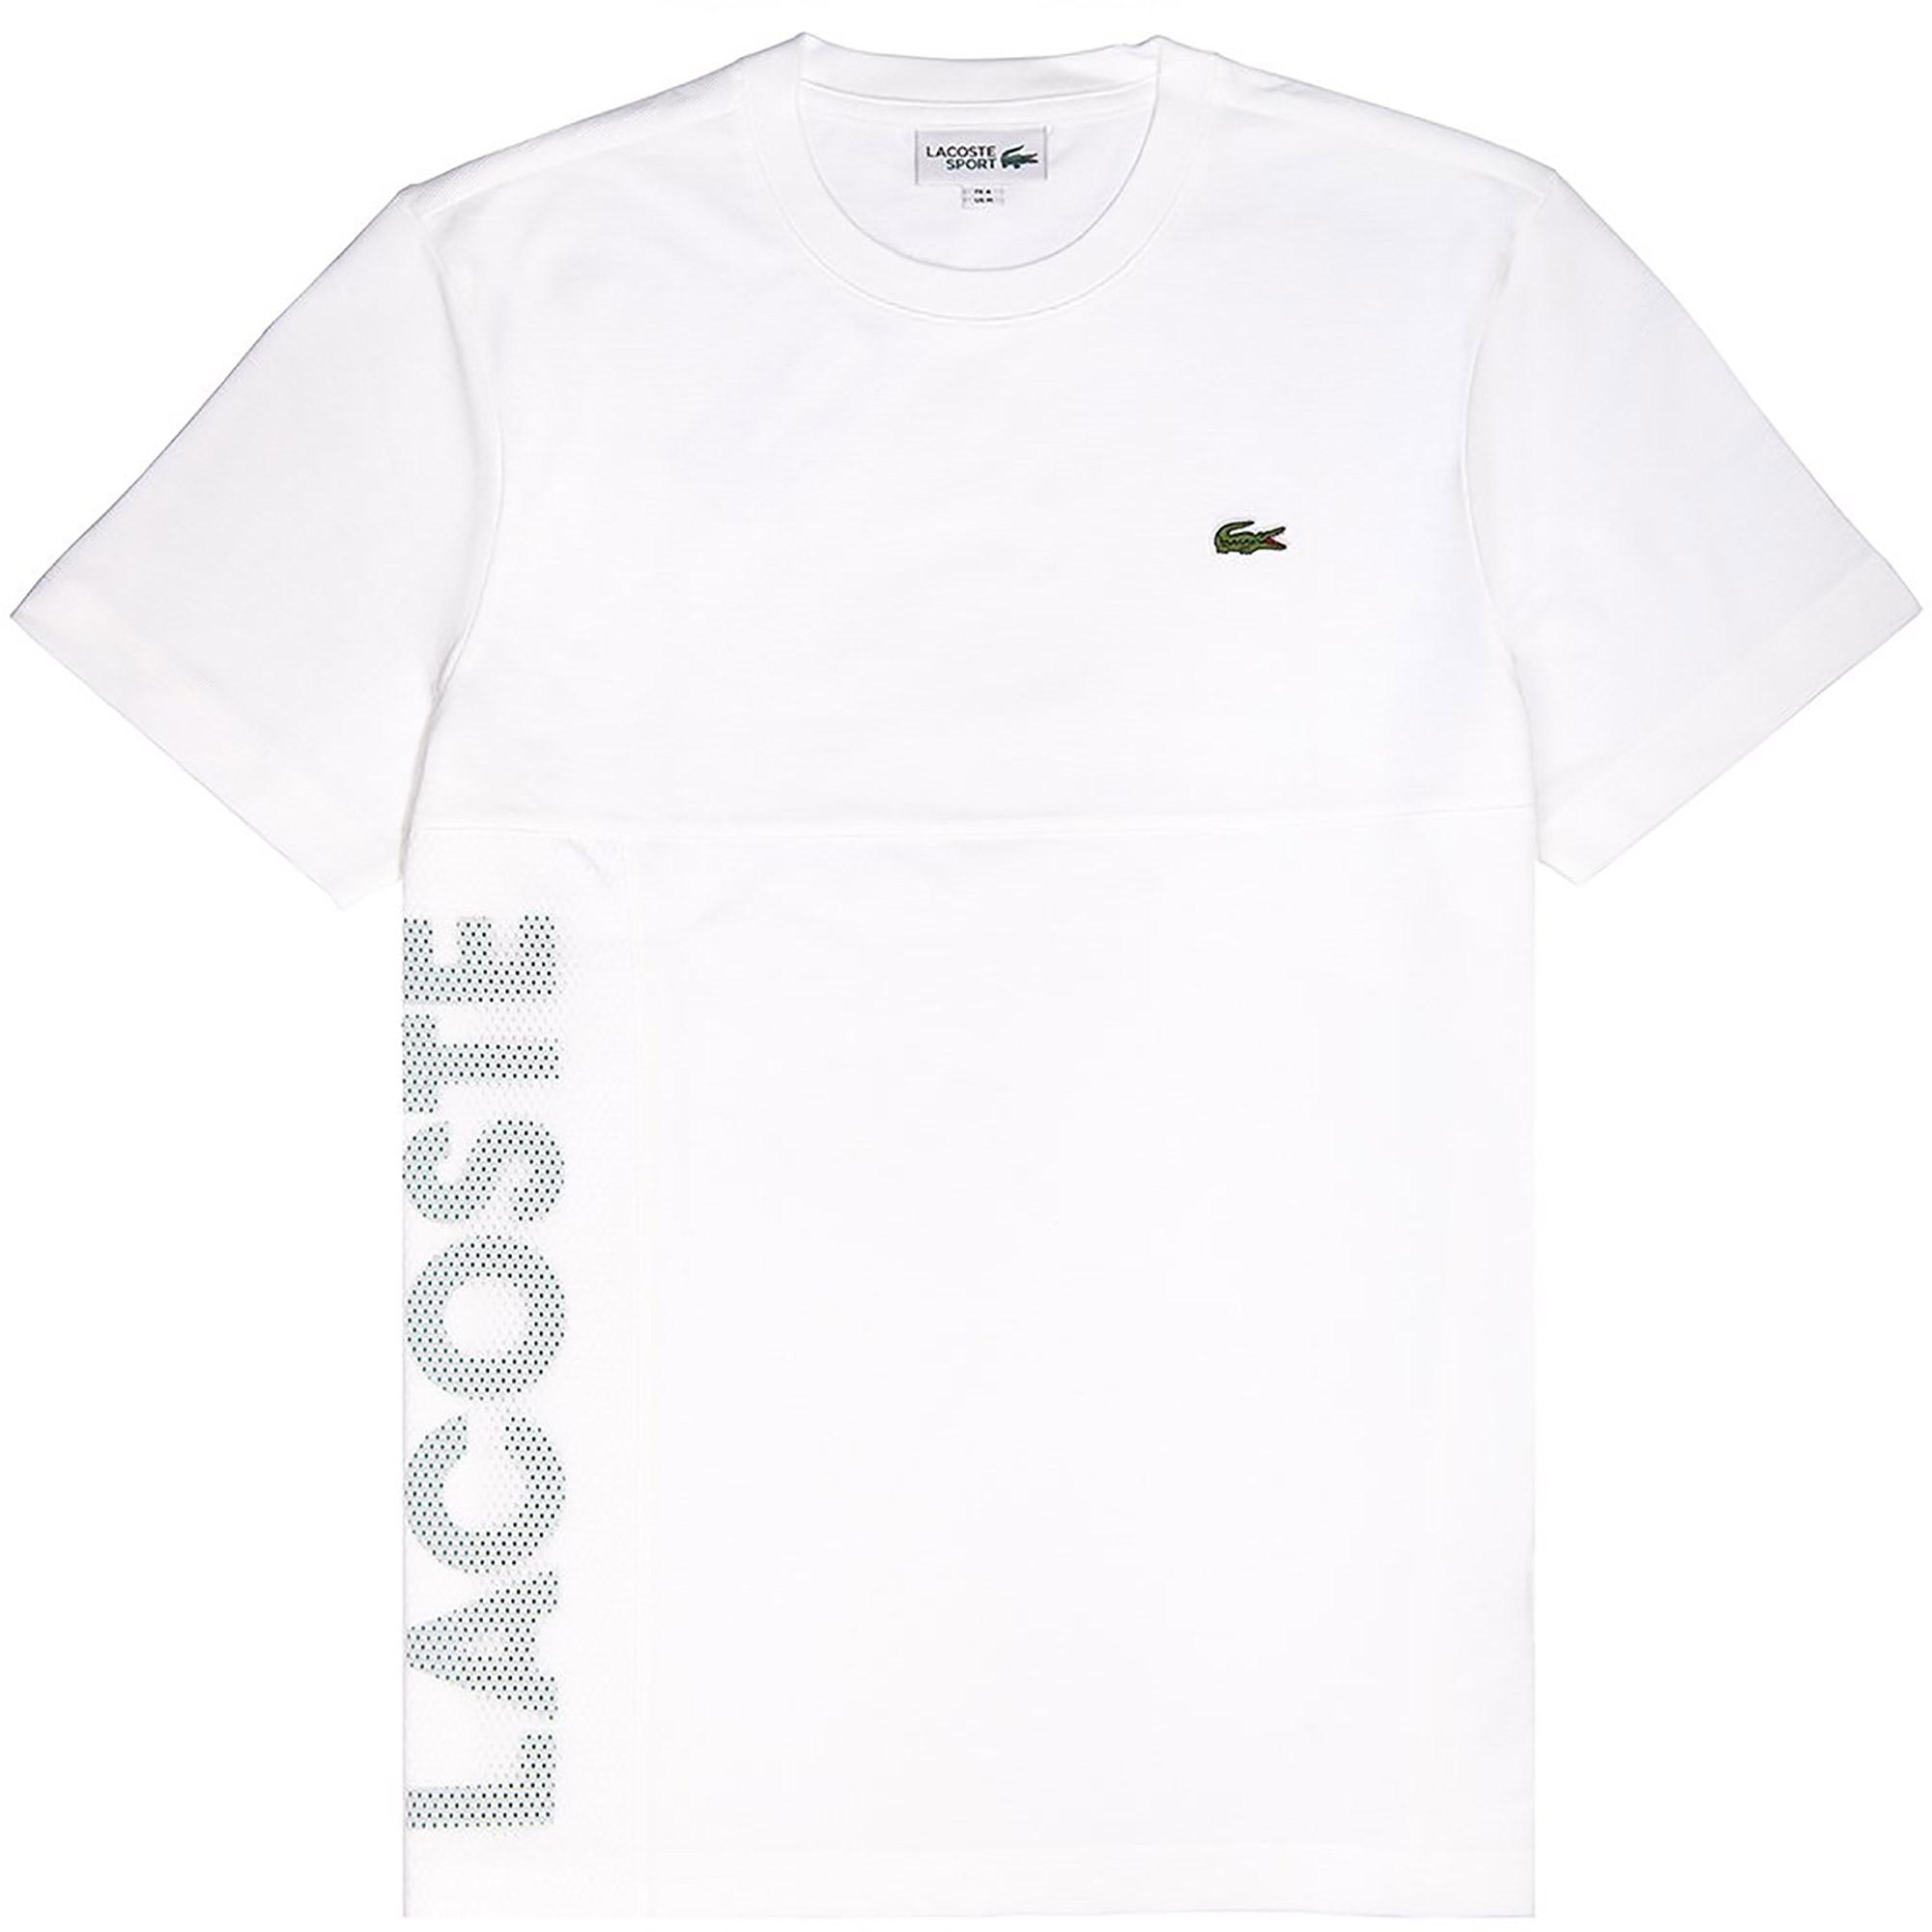 344b13b9 Lacoste Mens Crew Neck T-Shirt - White/Woodland Green - Tennisnuts.com